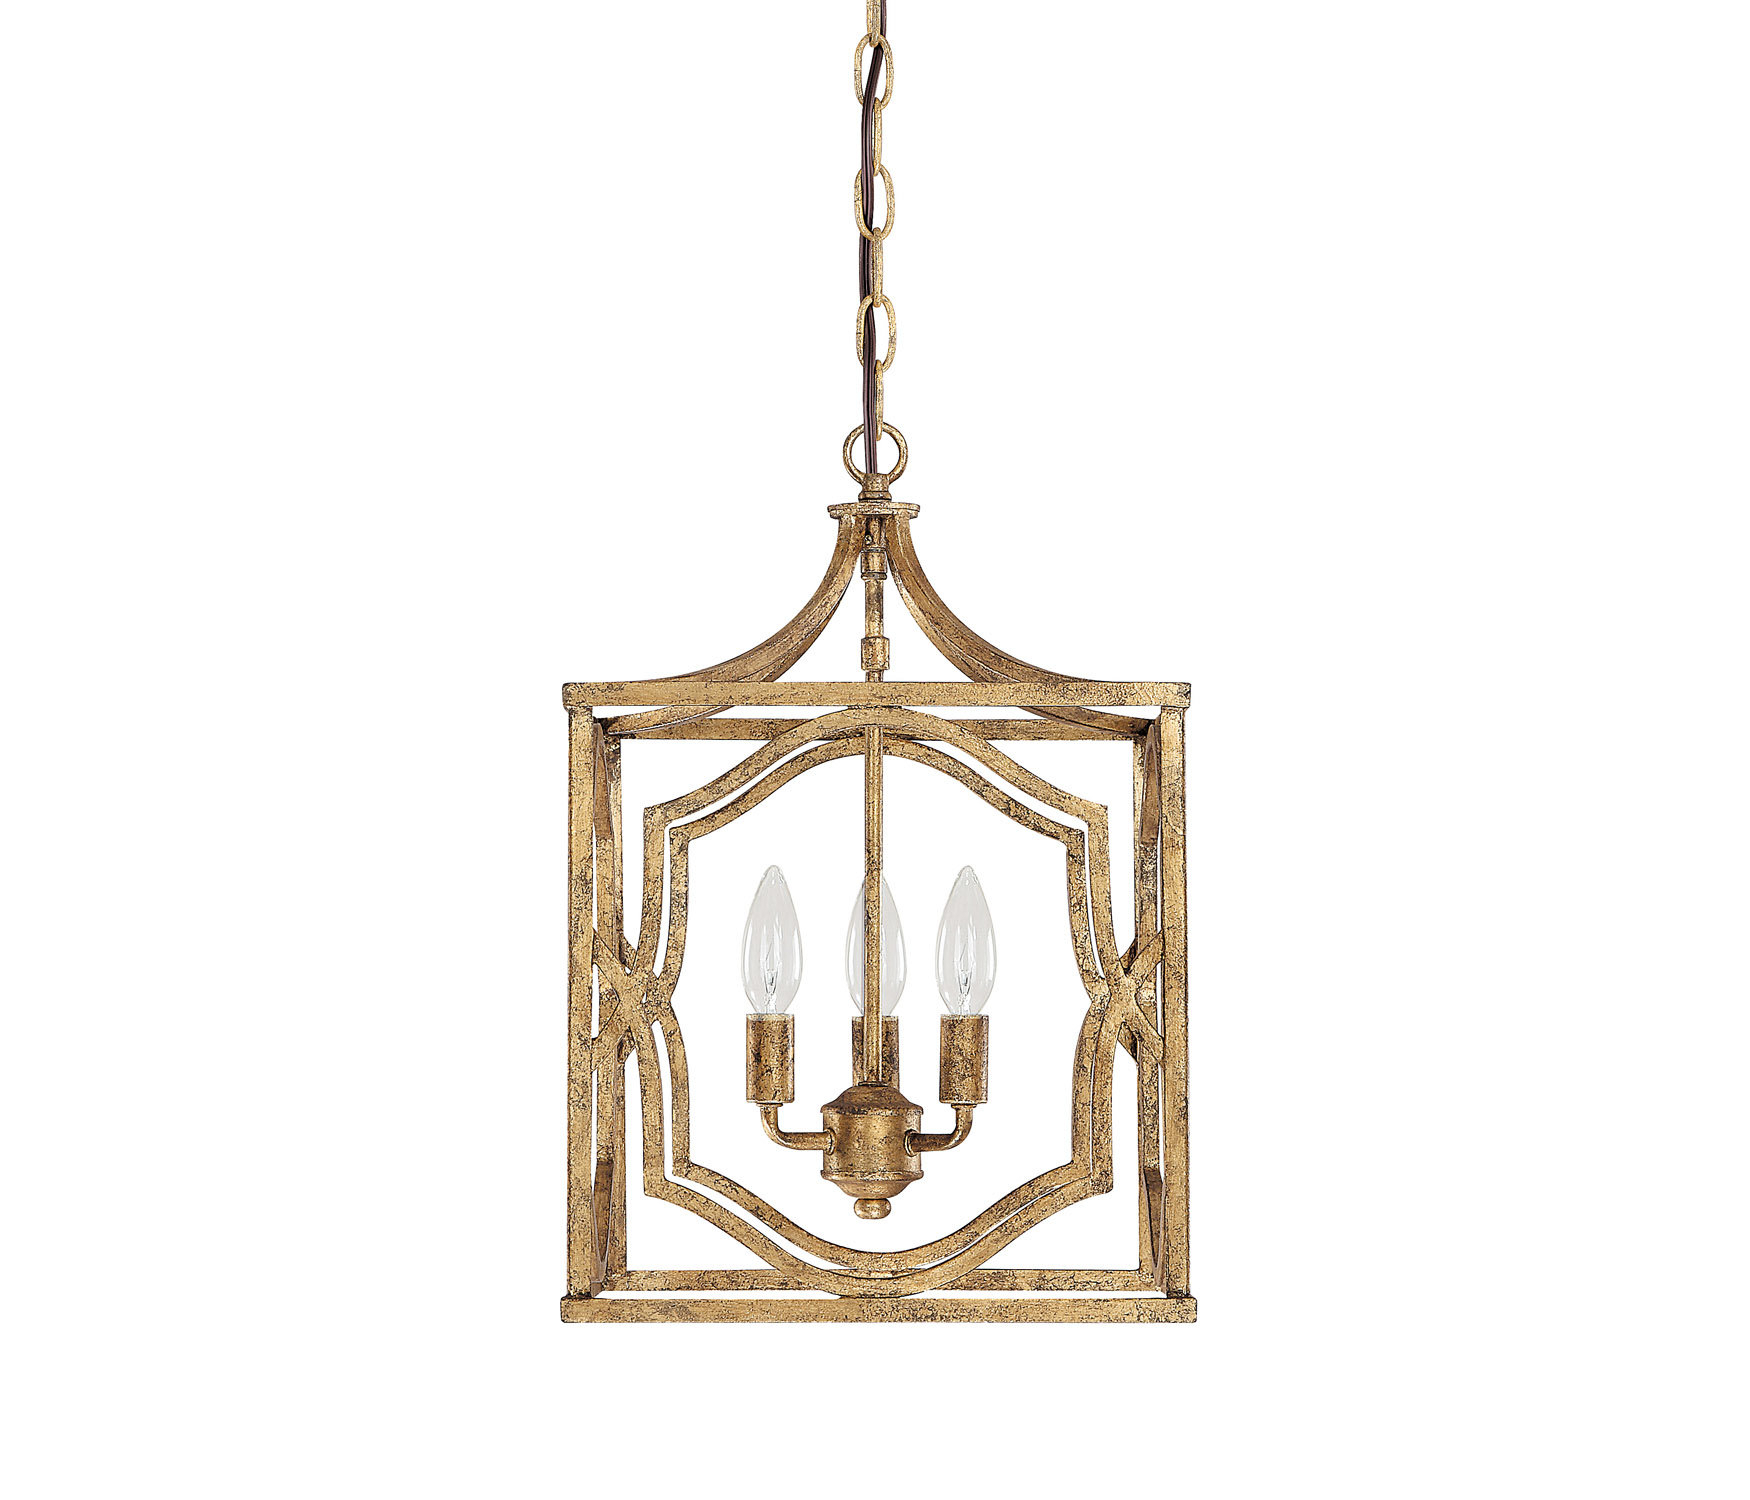 Destrey 3-Light Lantern Square/rectangle Pendant & Reviews intended for Armande 3-Light Lantern Geometric Pendants (Image 15 of 30)